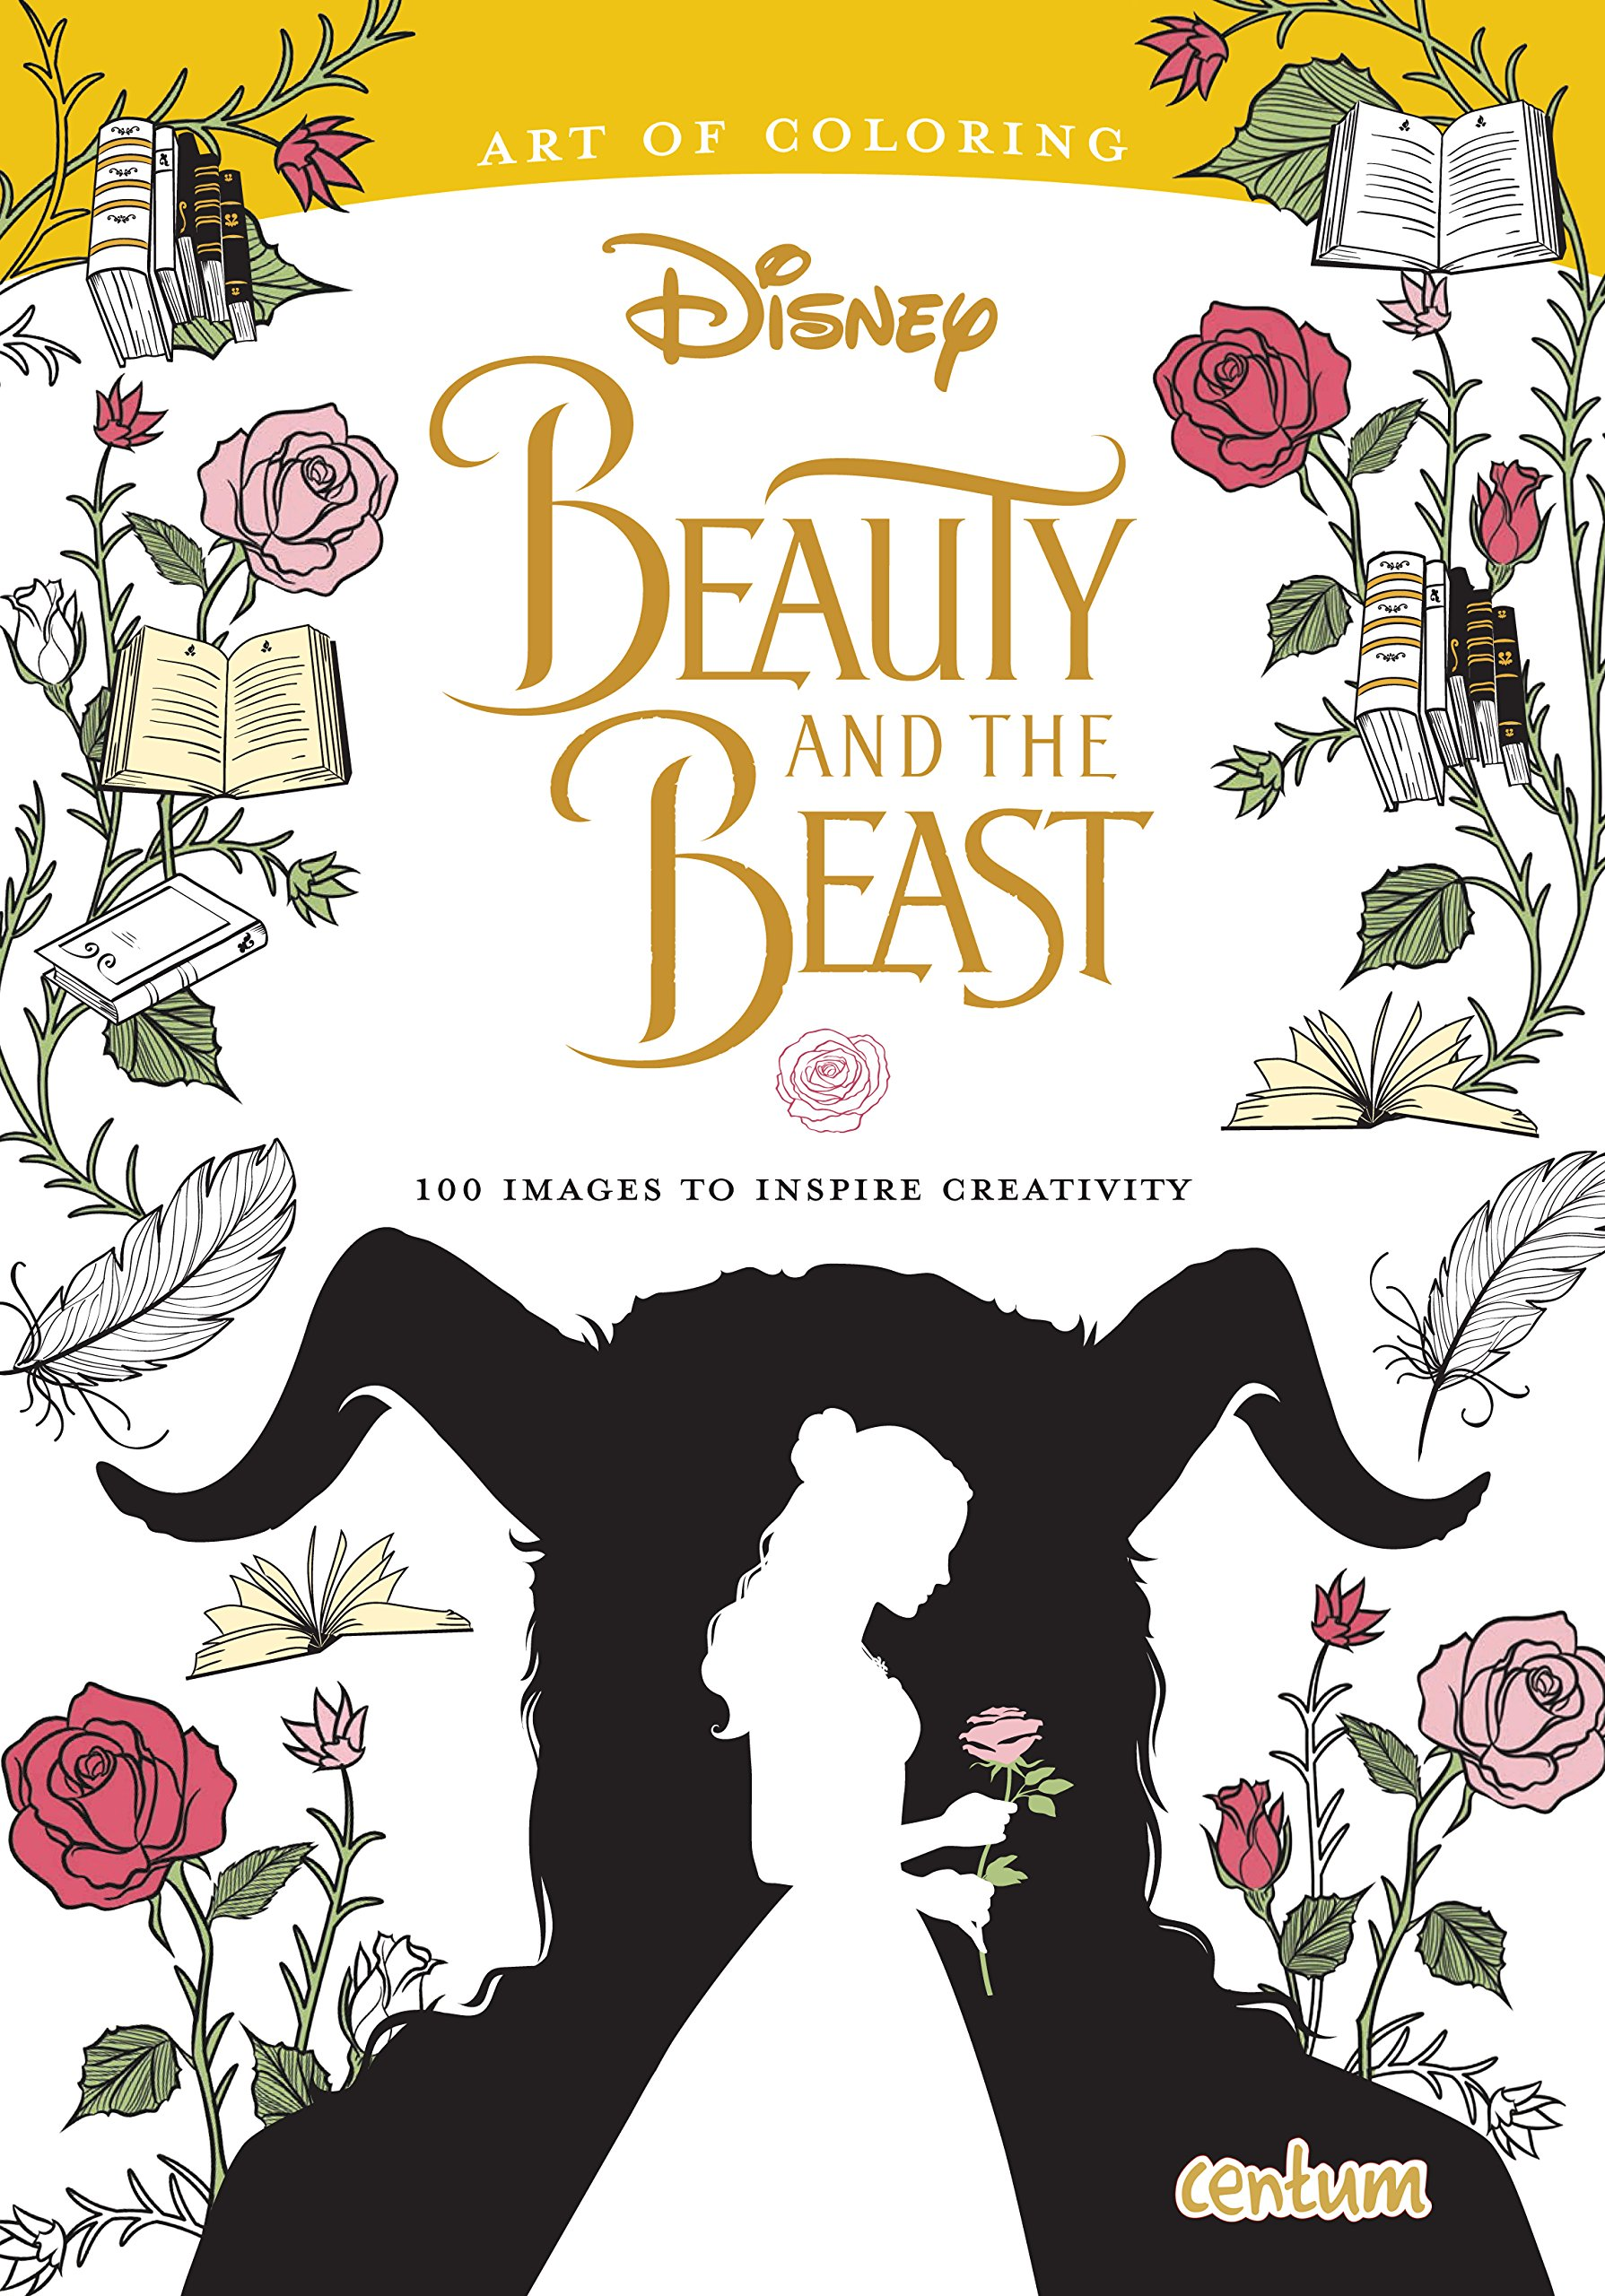 - Beauty & The Beast Deluxe Colouring Book: Amazon.co.uk: Centum